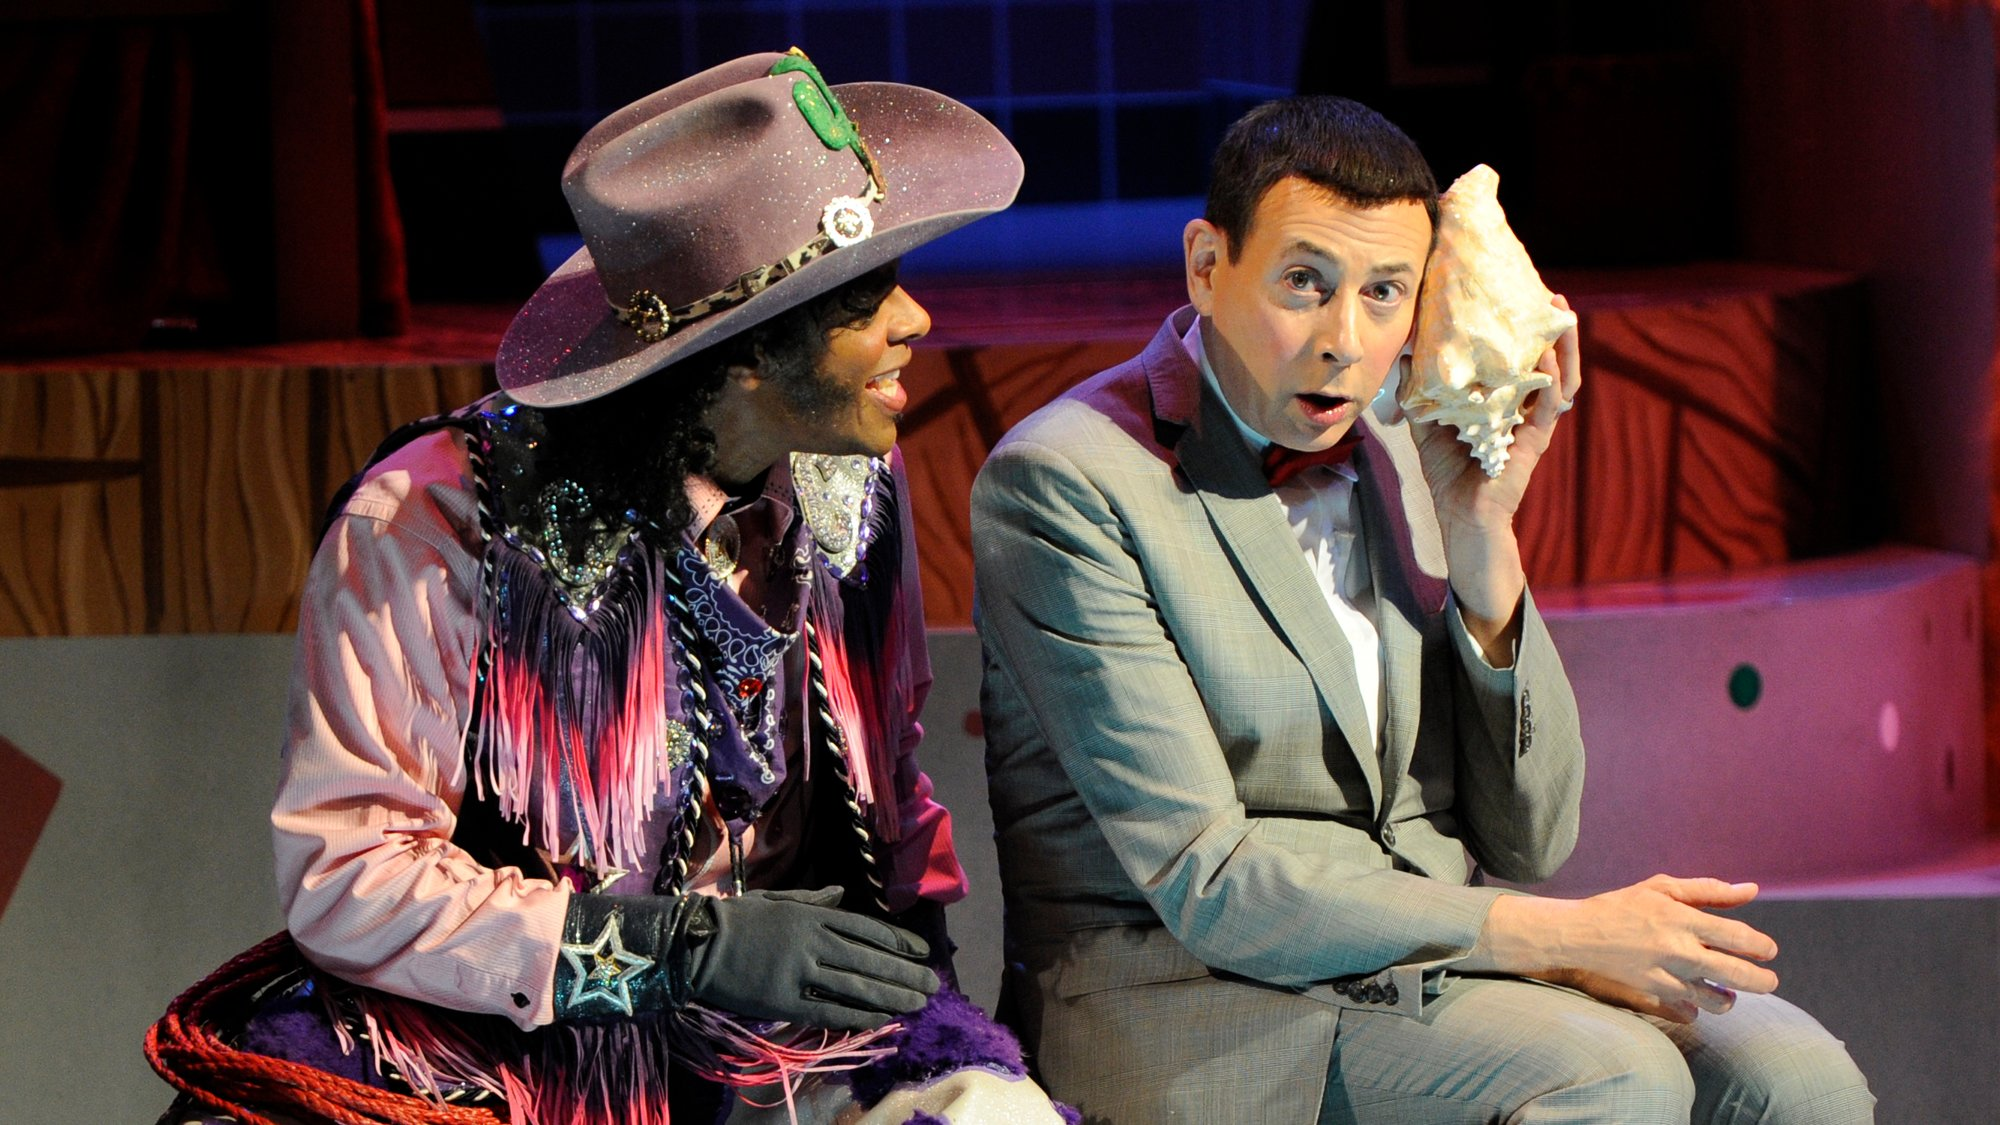 The Pee Wee Herman Show on Broadway